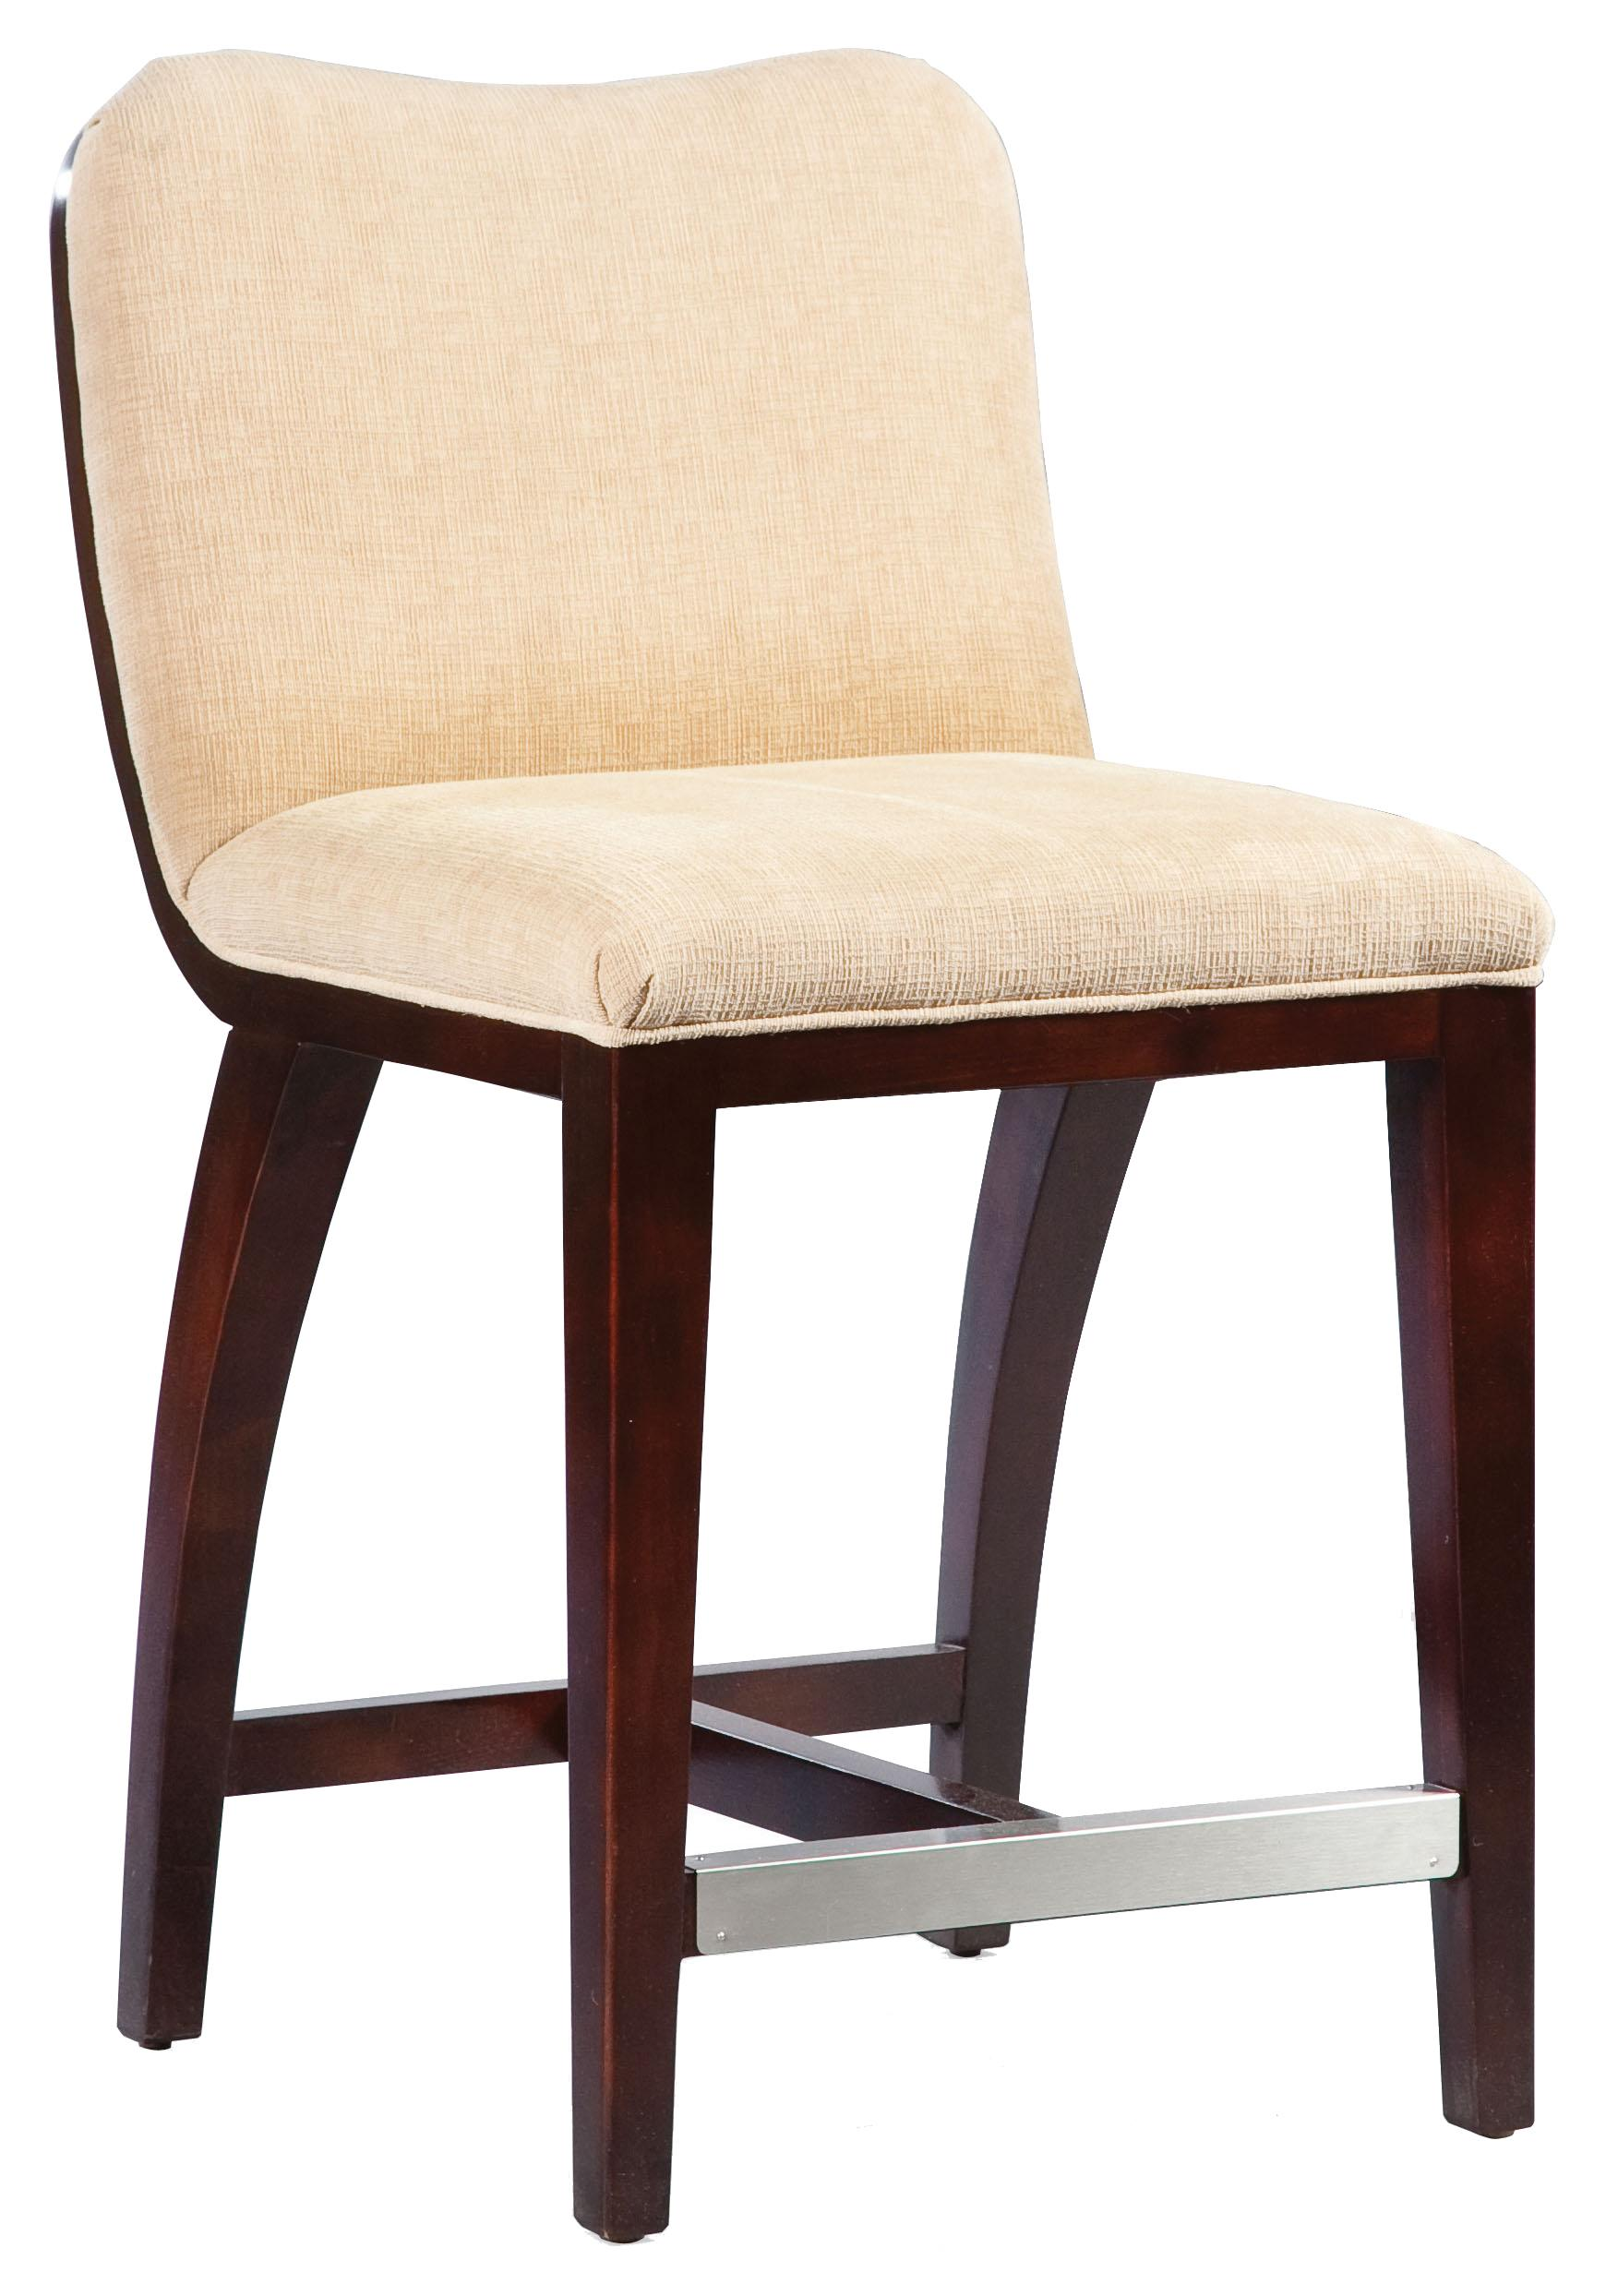 High End Barstool Fairfield Barstools High End Counter Stool With Decorative